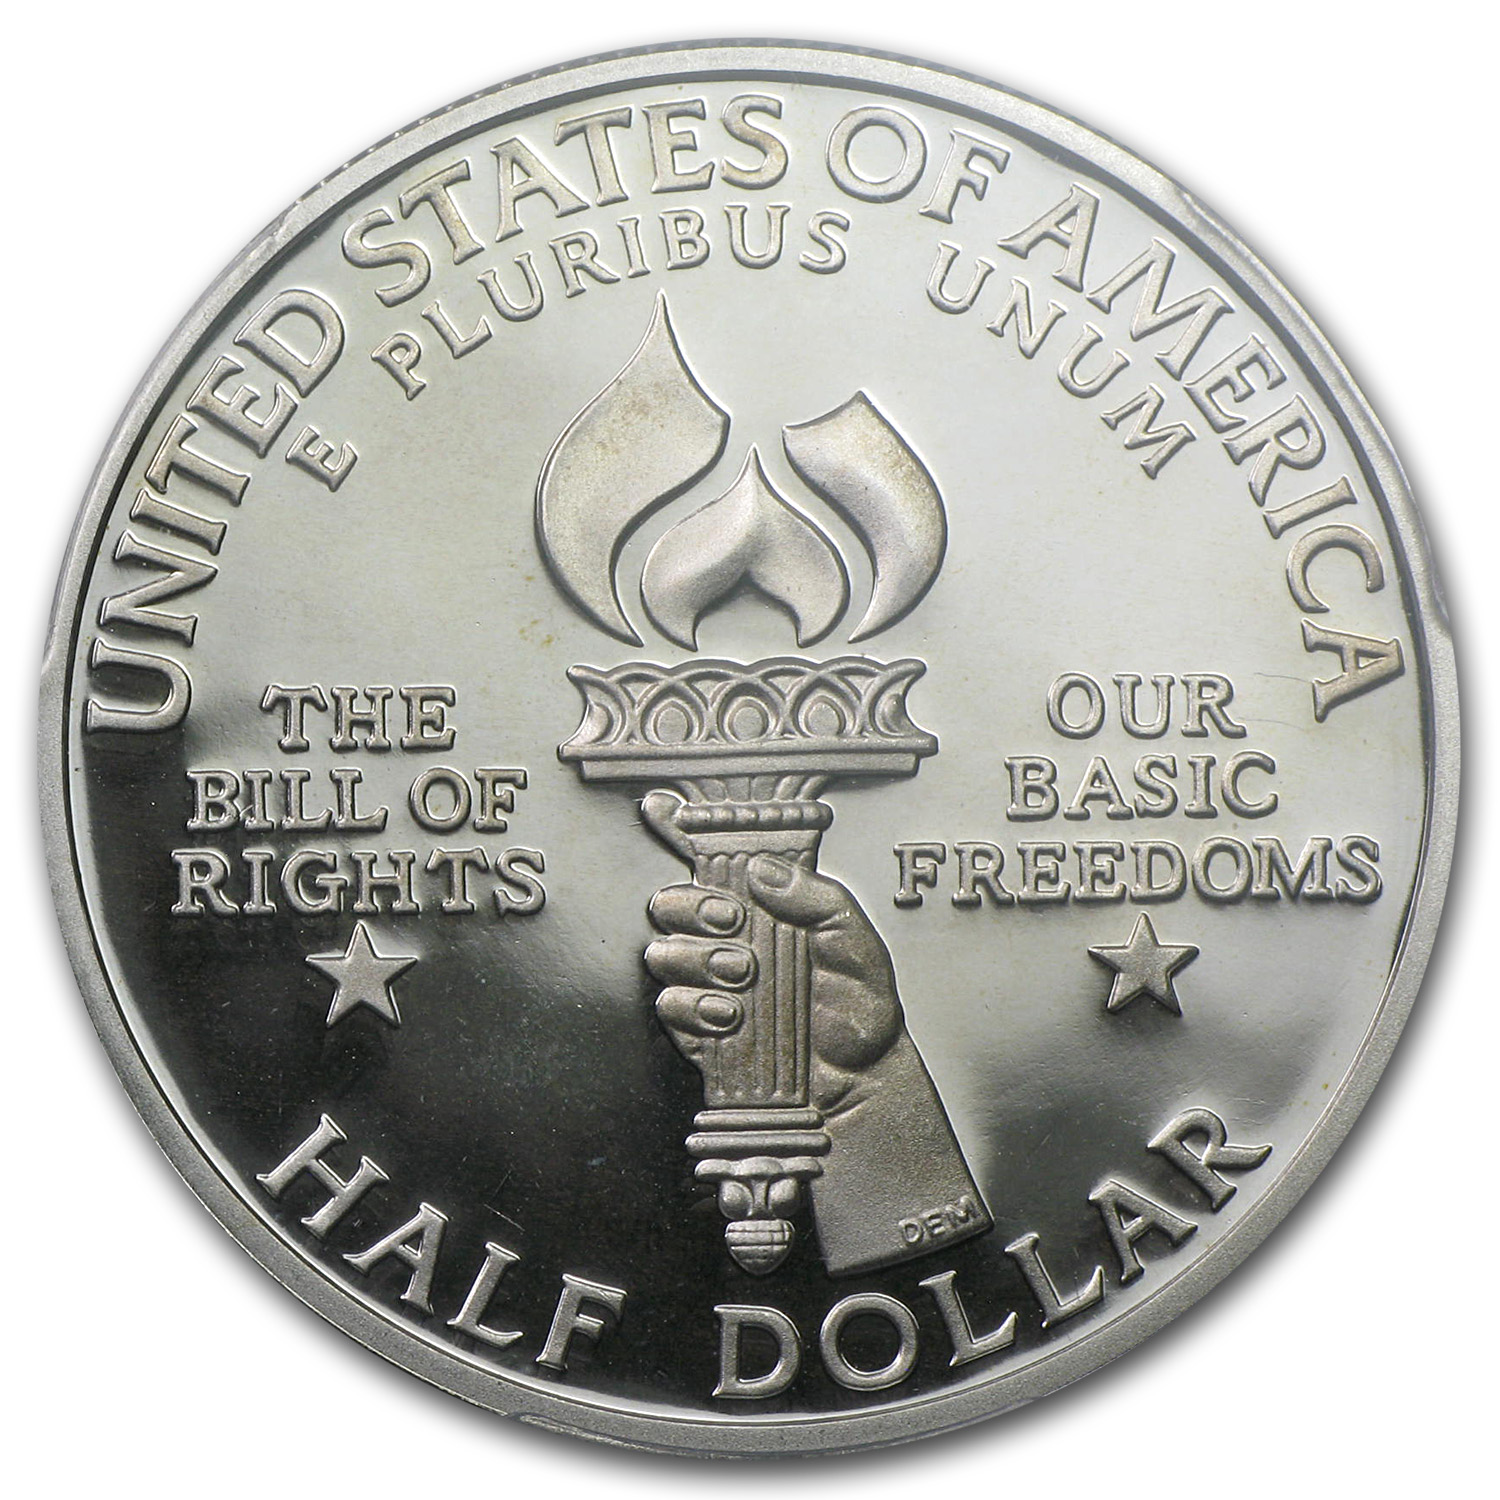 1993-S Bill of Rights Half Dollar Silver Commem PR-69 DCAM PCGS